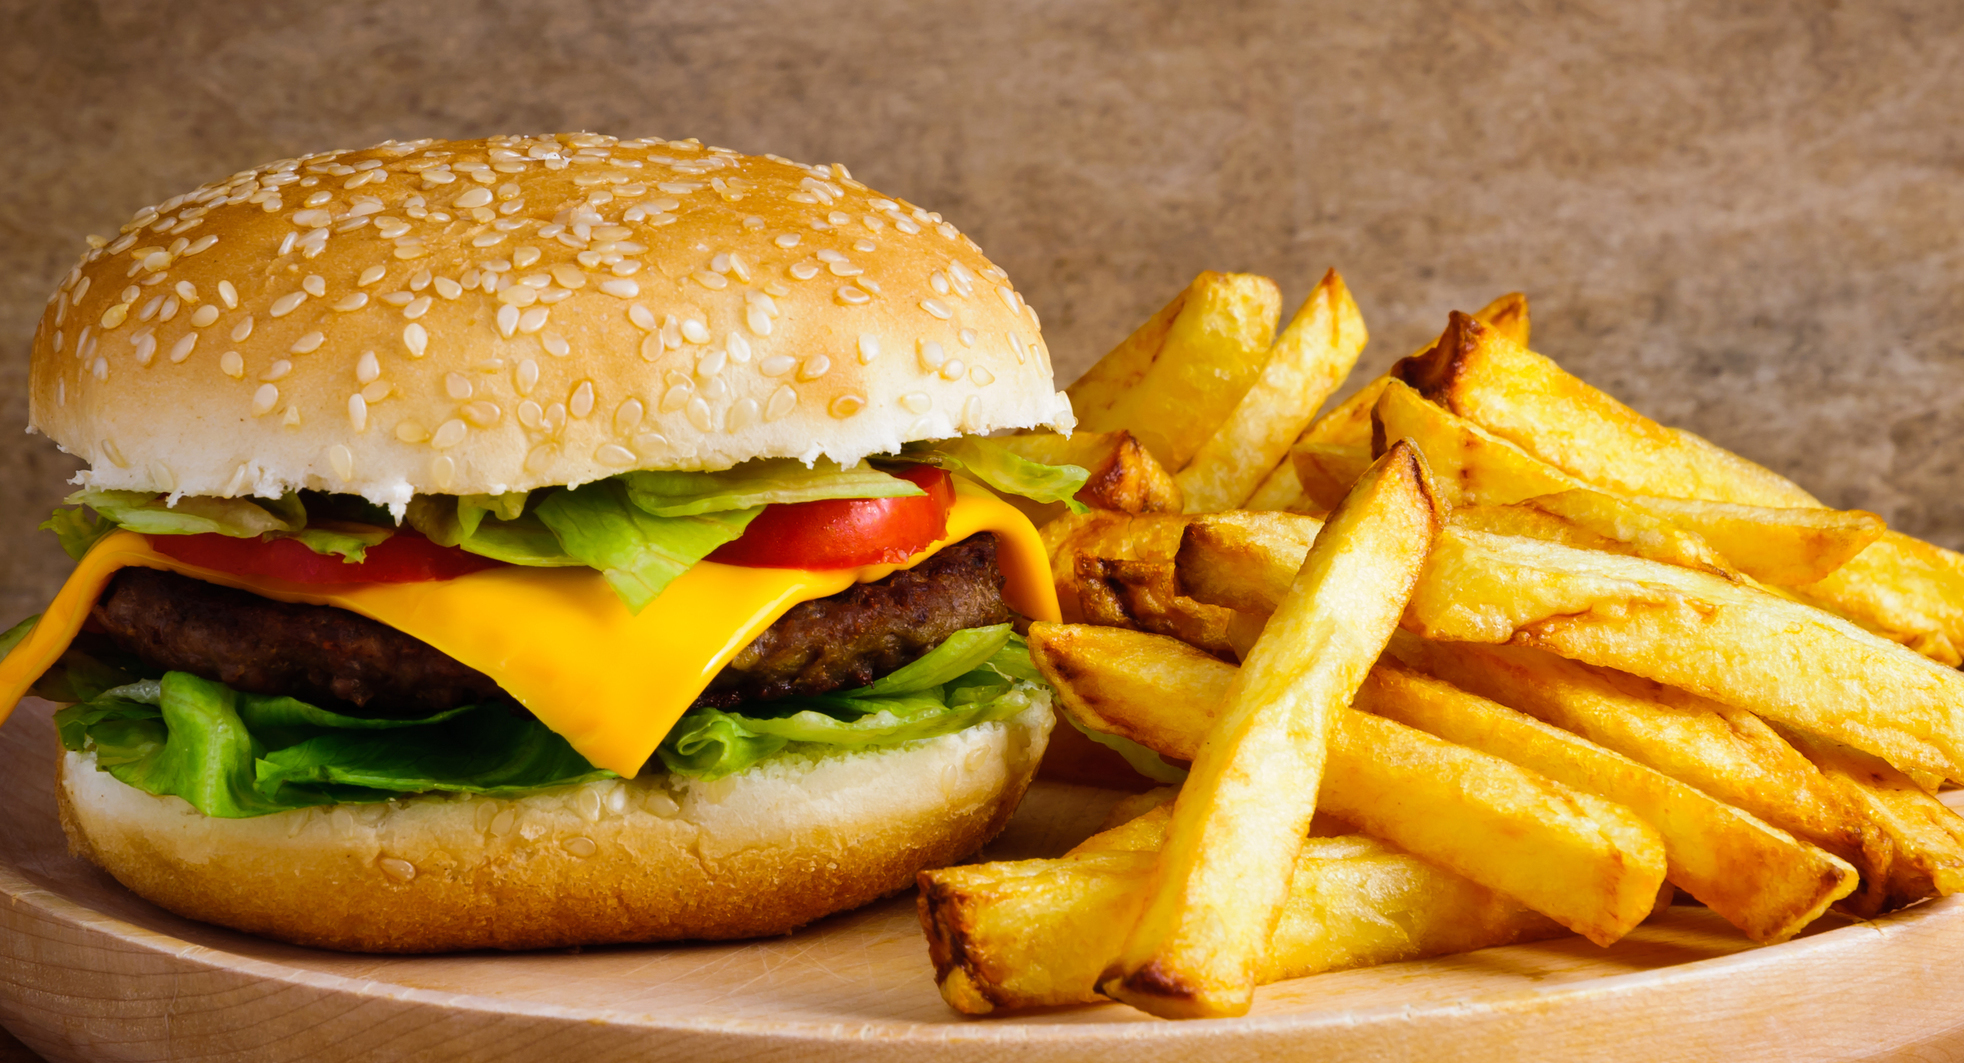 Top 7 Apps For Finding Fast Food Near Me Satisfy Your